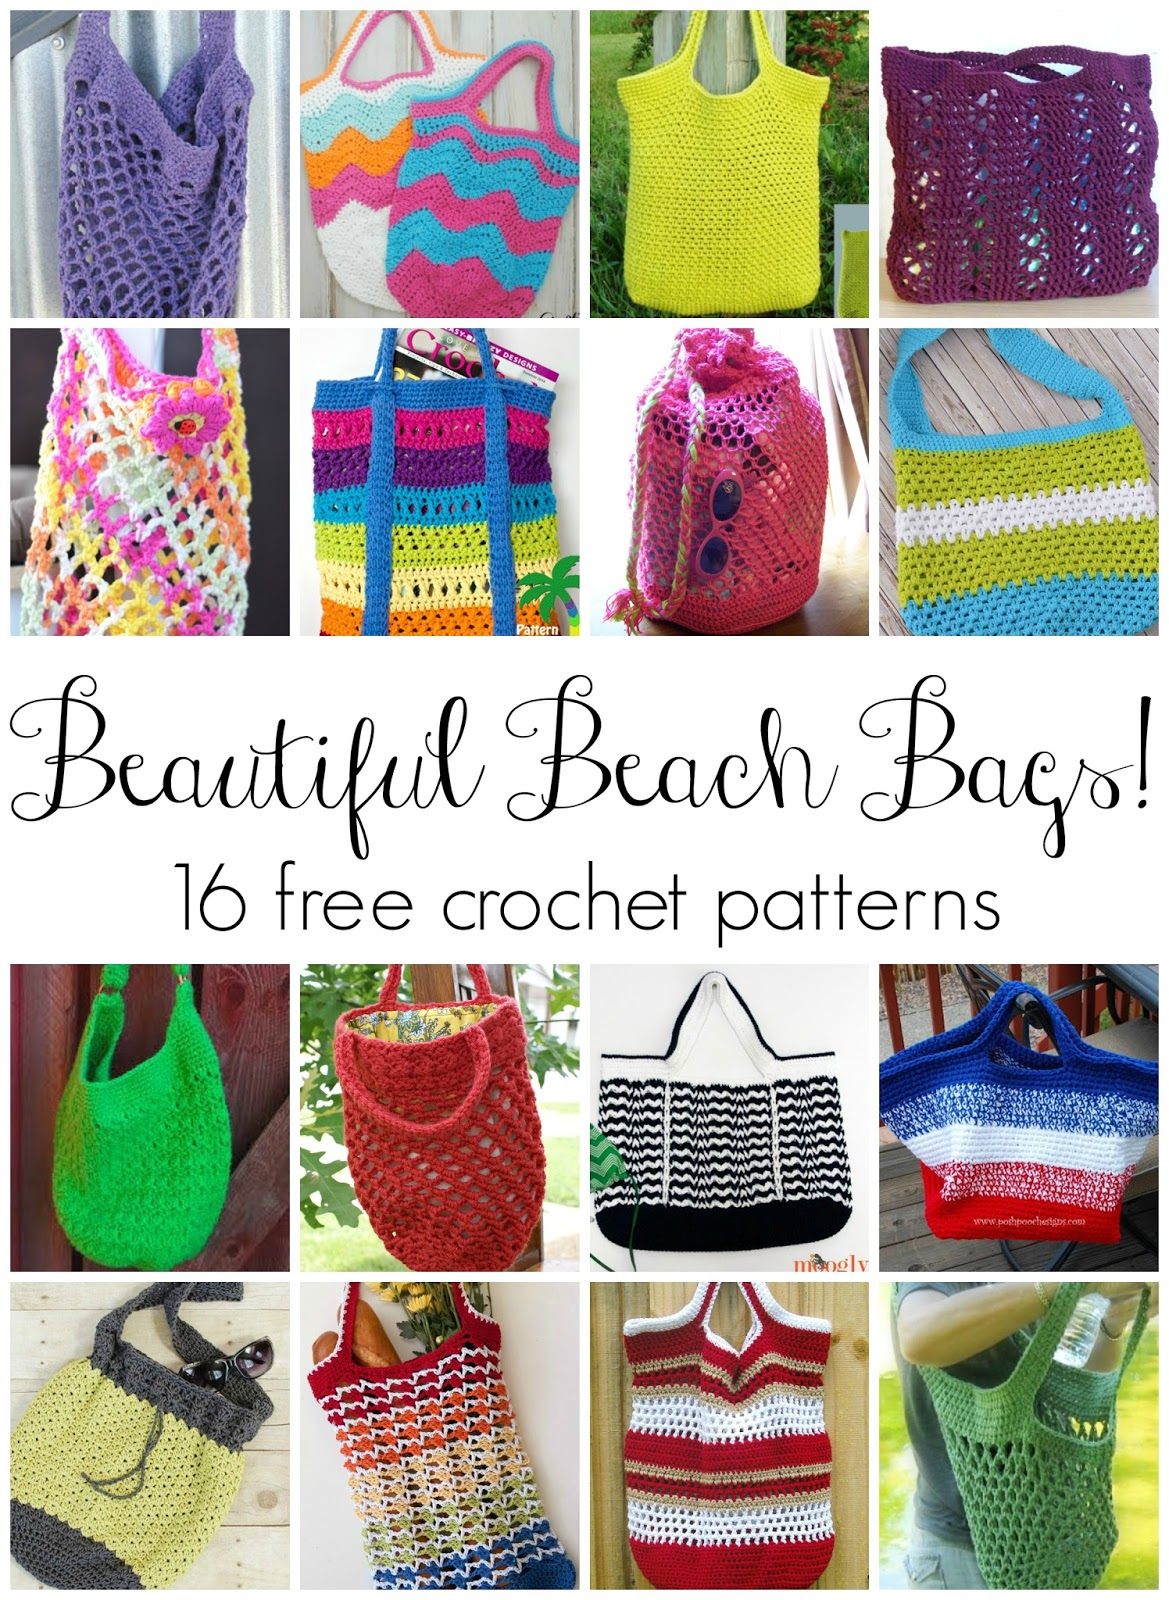 Fiber flux beautiful beach bags 16 free crochet patterns beautiful beach bags 16 free crochet patterns bankloansurffo Image collections